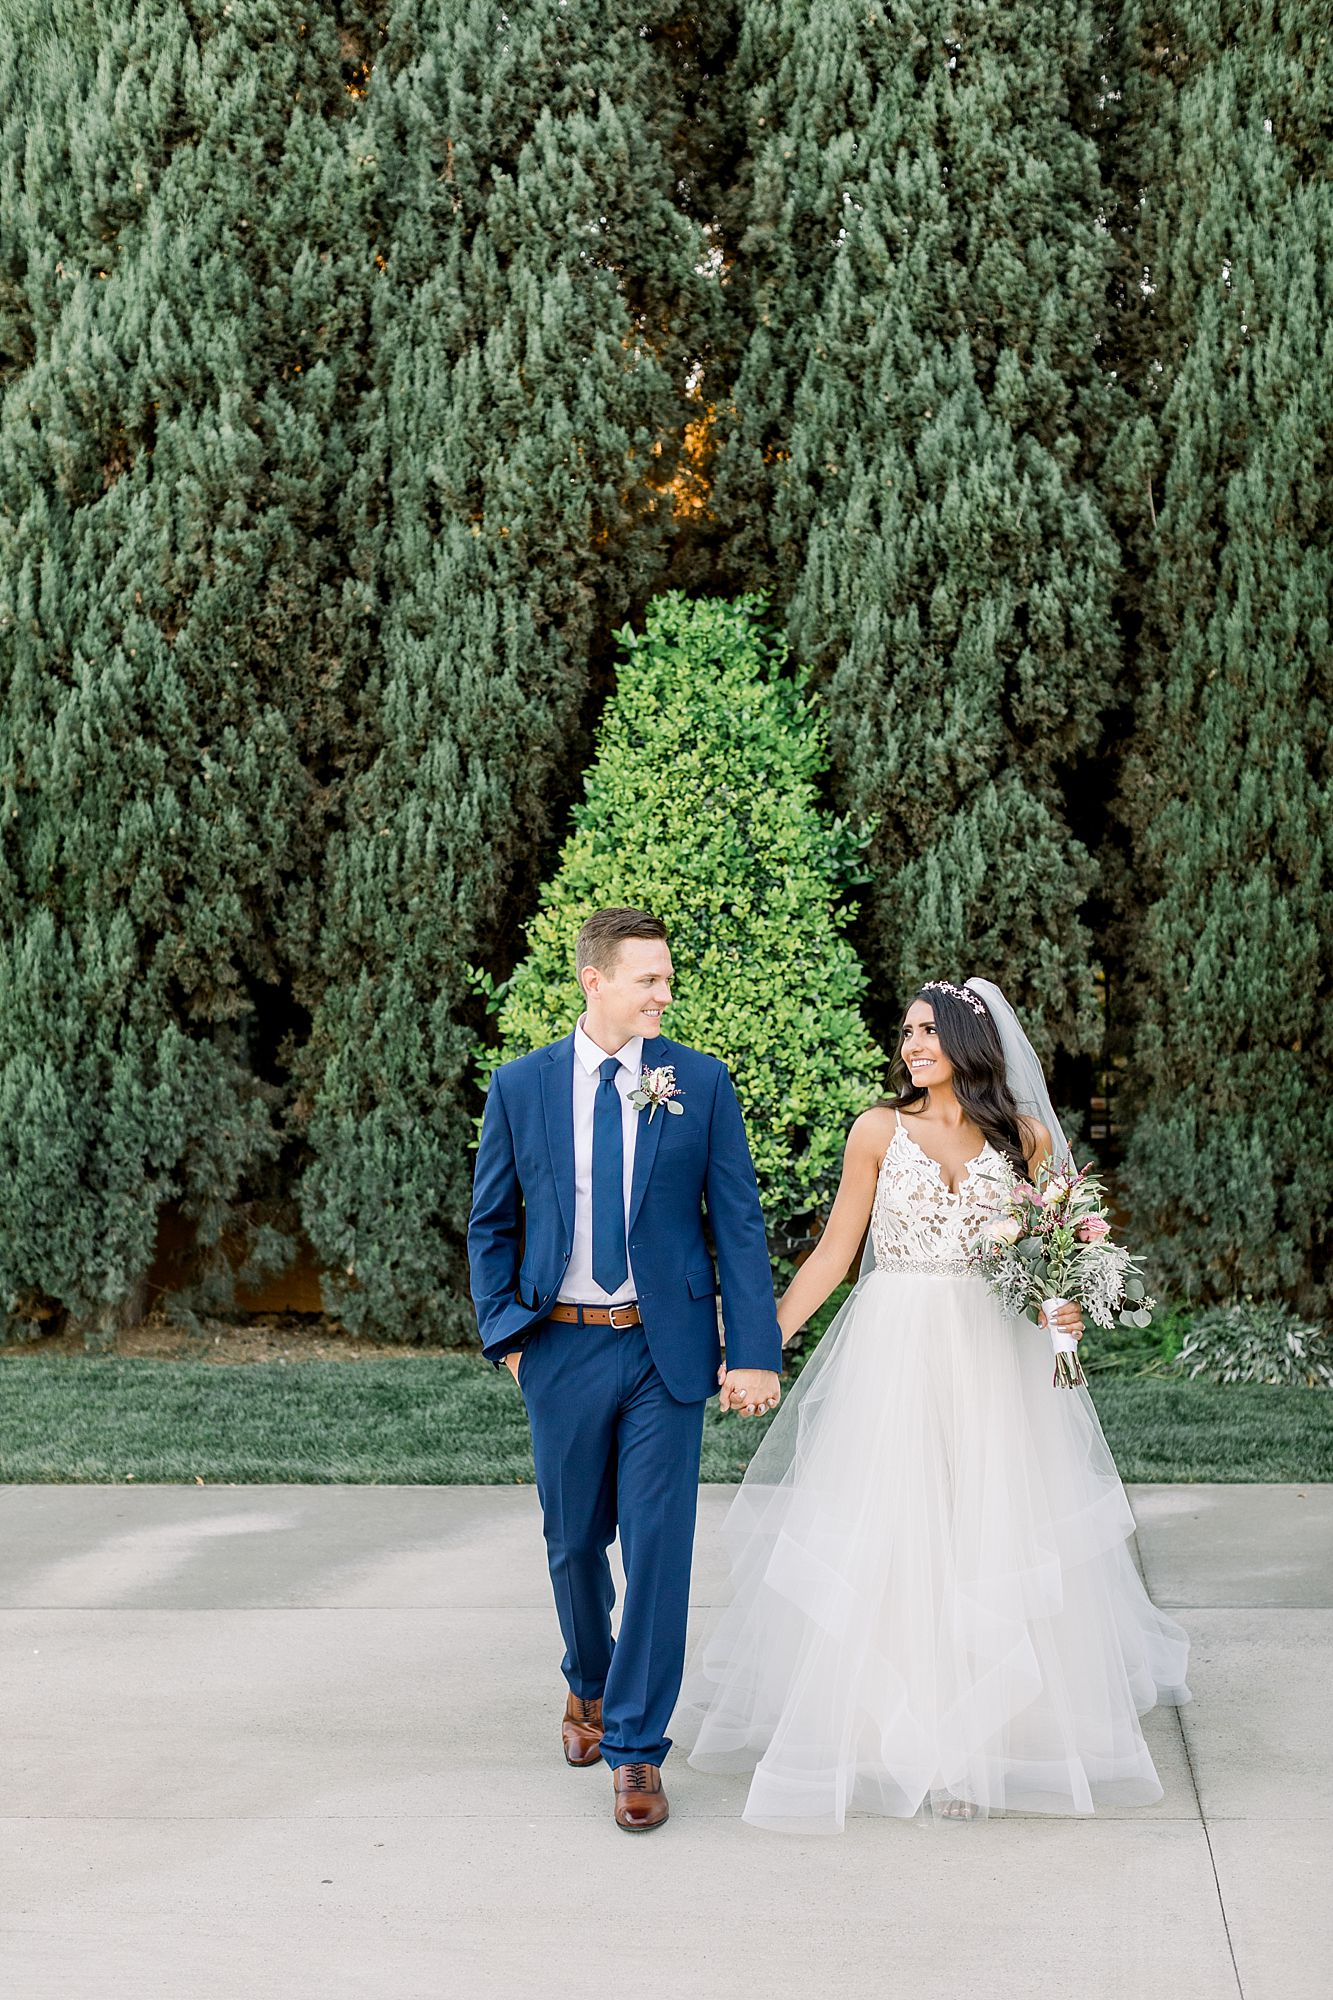 The River Mill Wedding Stockton - Ashley Baumgartner - Stockton Wedding Photographer - Sacramento Wedding Photography - Hybrid and Film Photographer - Sacramento Film Photographer_0039.jpg